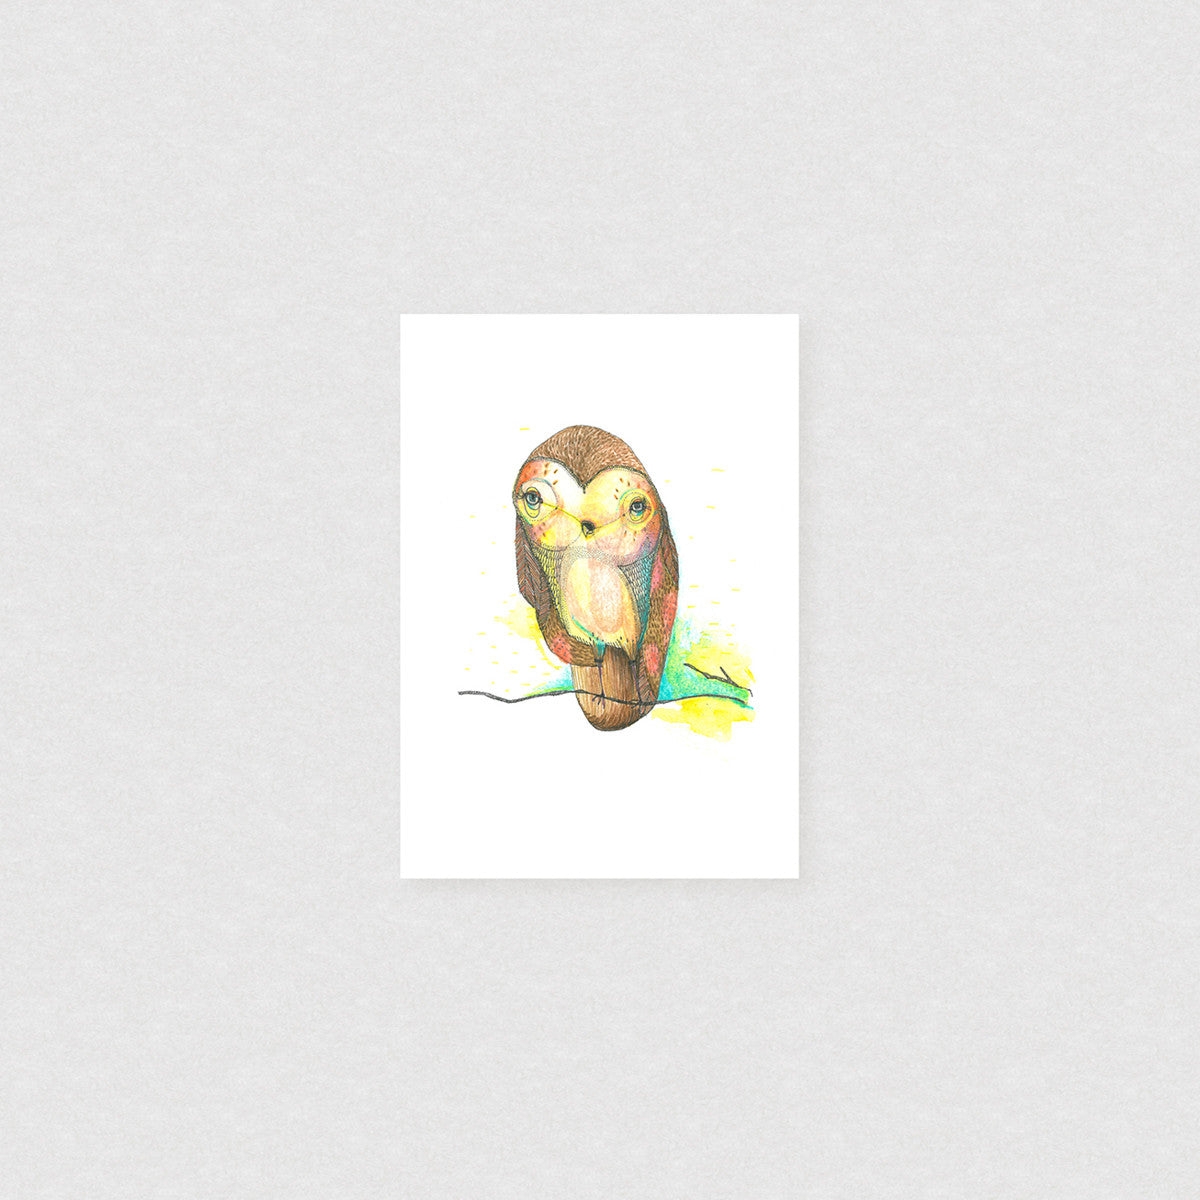 Pretty Young Thing - Limited Edition Print | by Natalie Martin - Unframed Prints - Throw Some Seeds - Australian gardening gifts and eco products online!